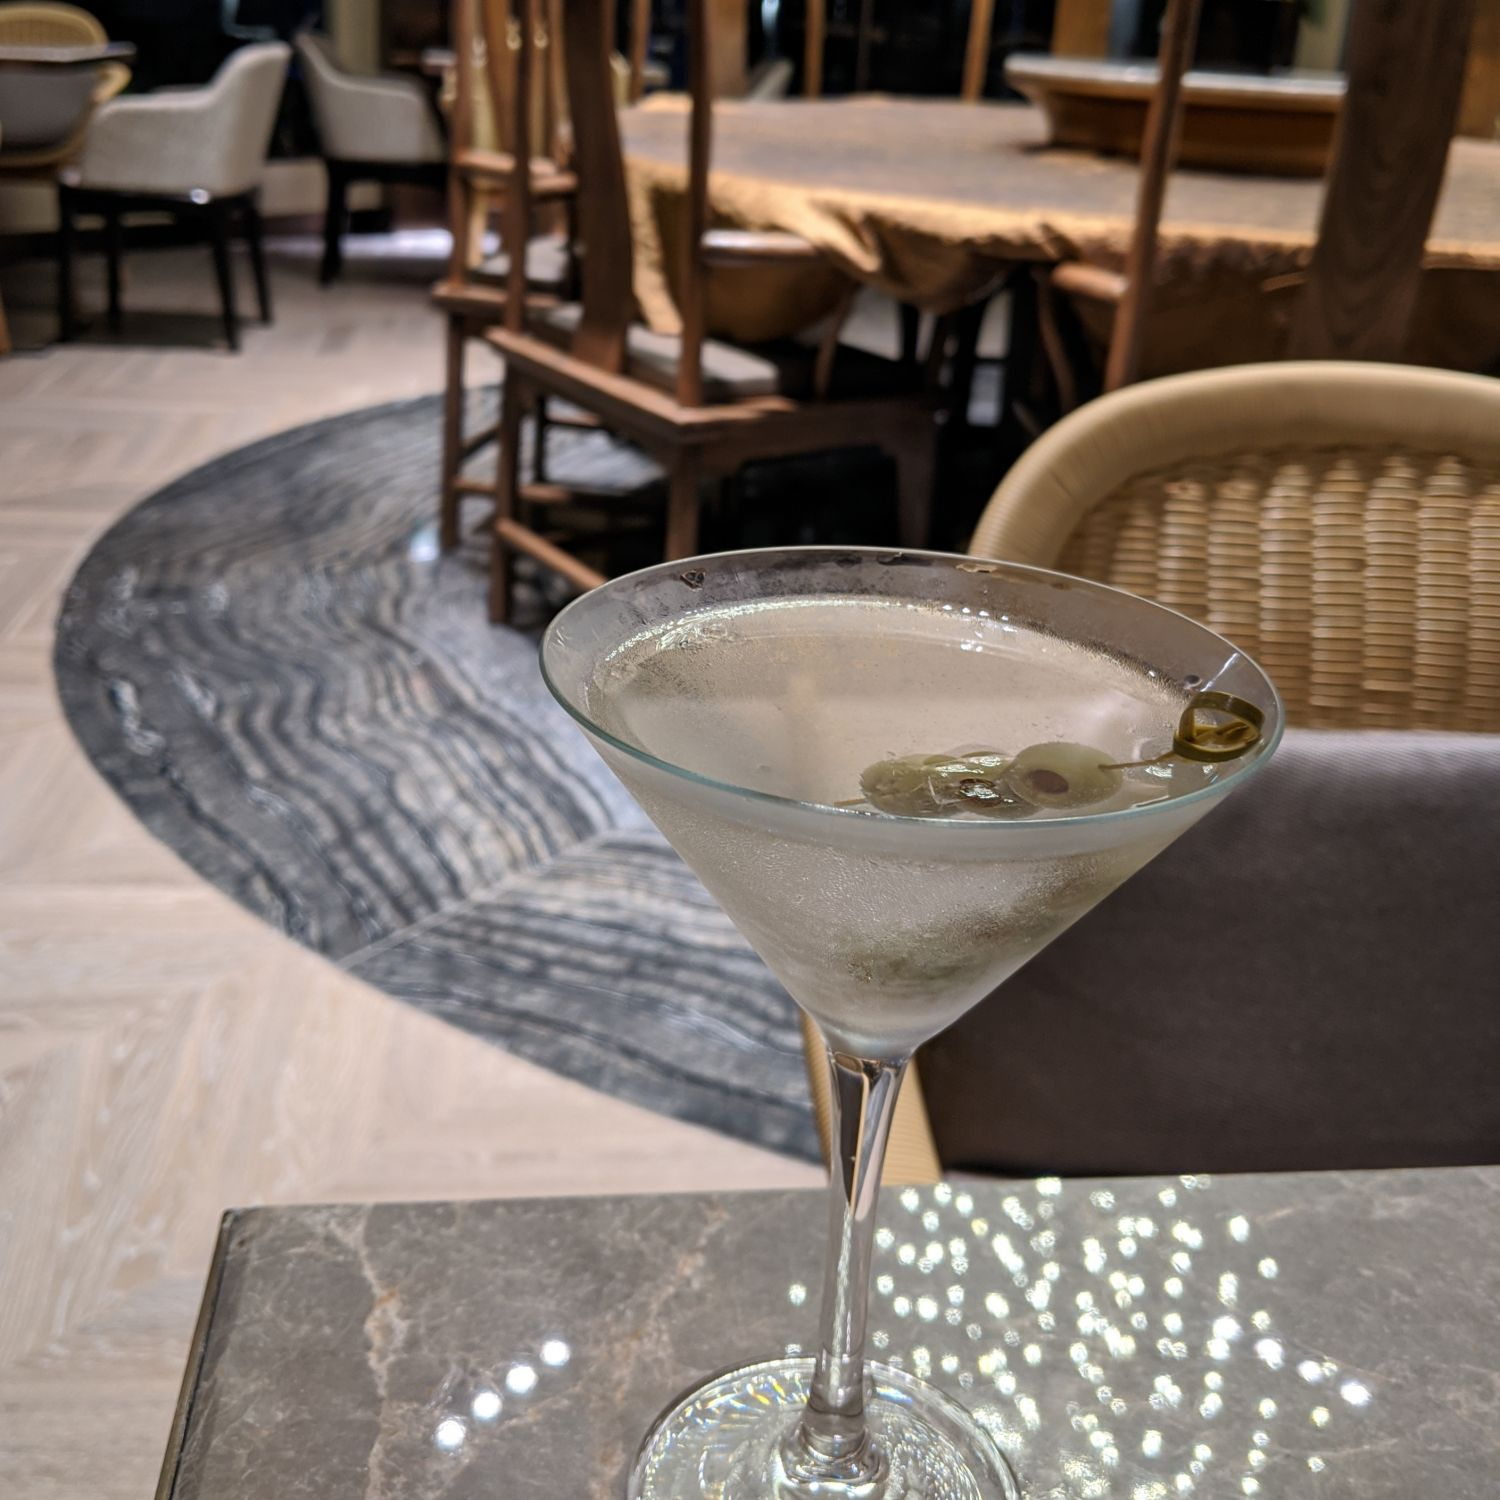 singapore marriott tang plaza hotel m club cocktails hors d'oeuvres & desserts gin martini